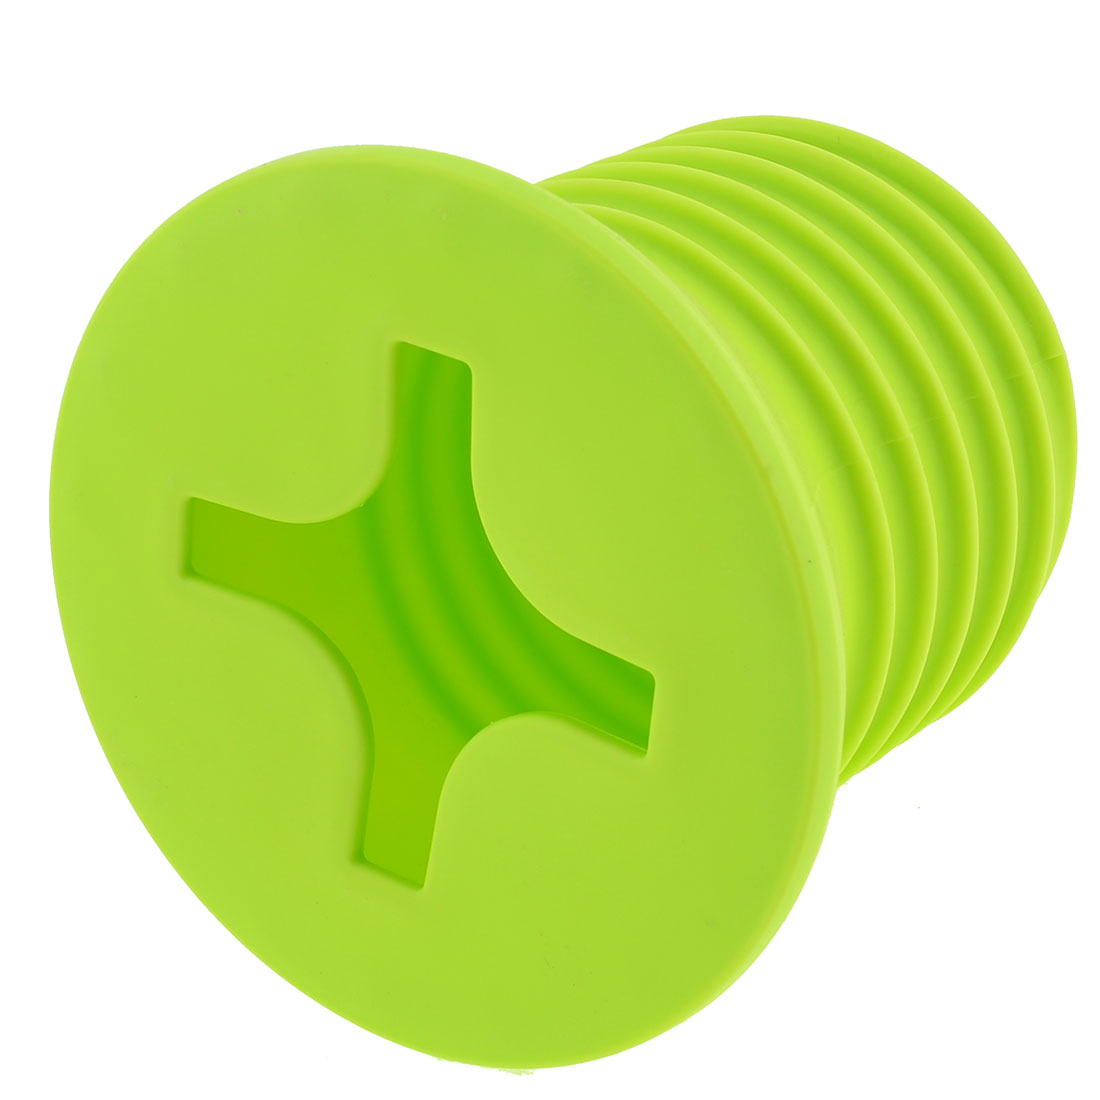 "6.3"" Height Yellow Green Screw Design Hard Plastic Tissue Box Container"